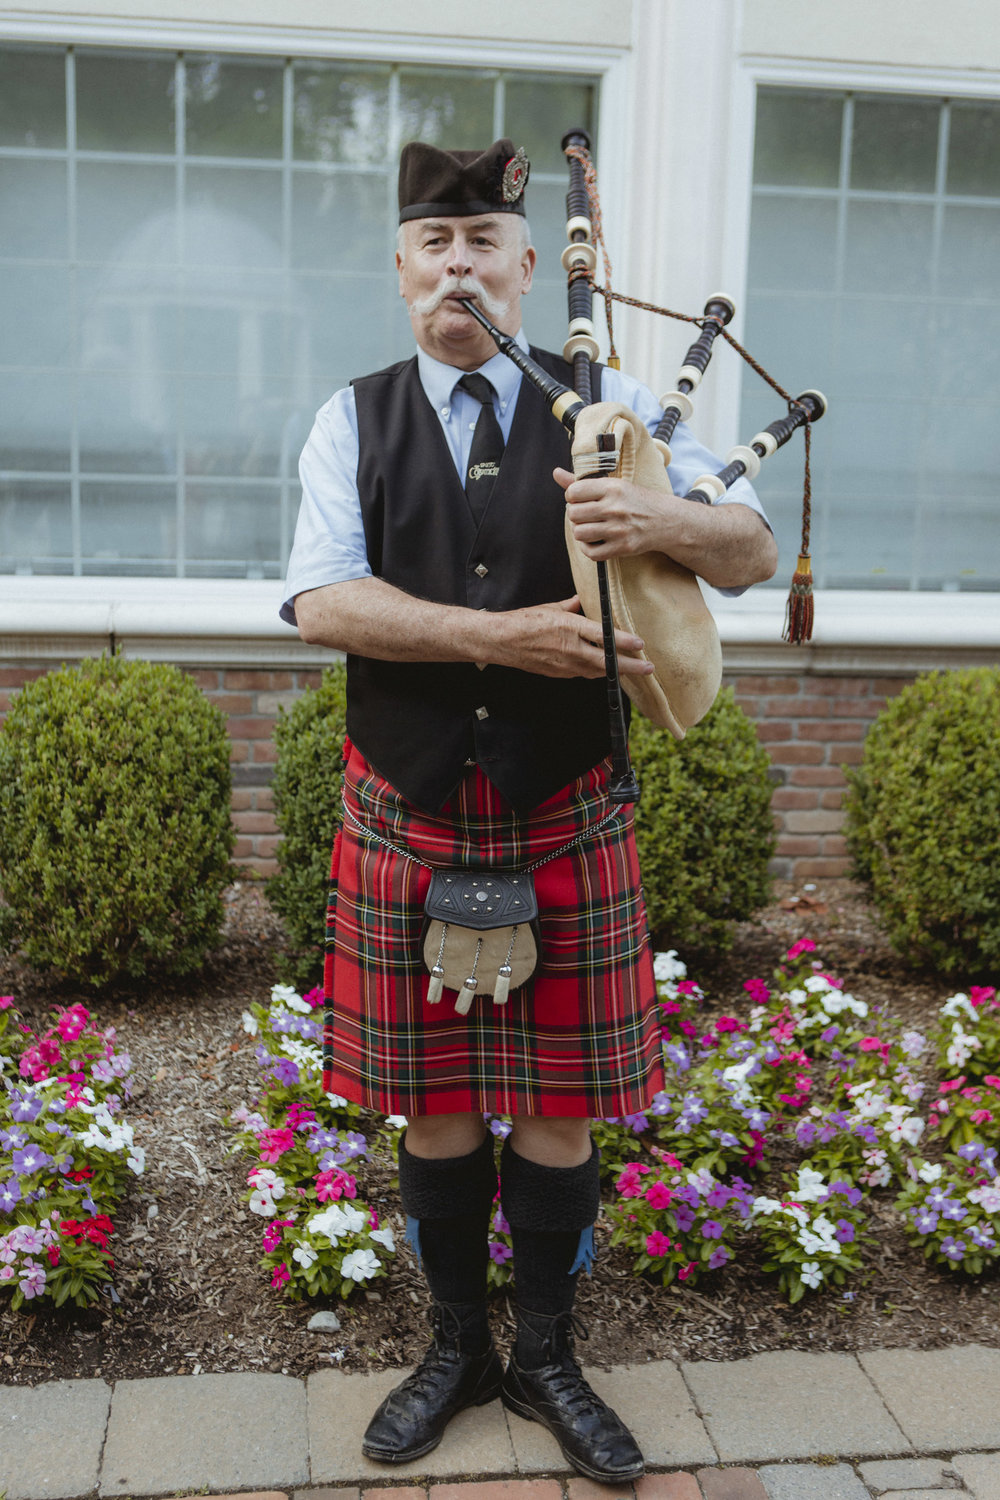 Bagpiper plays at cocktail hour - Estate at Florentine Gardens wedding - Hudson Valley Wedding - Kelsey & Anish's wedding - Amy Sims Photography